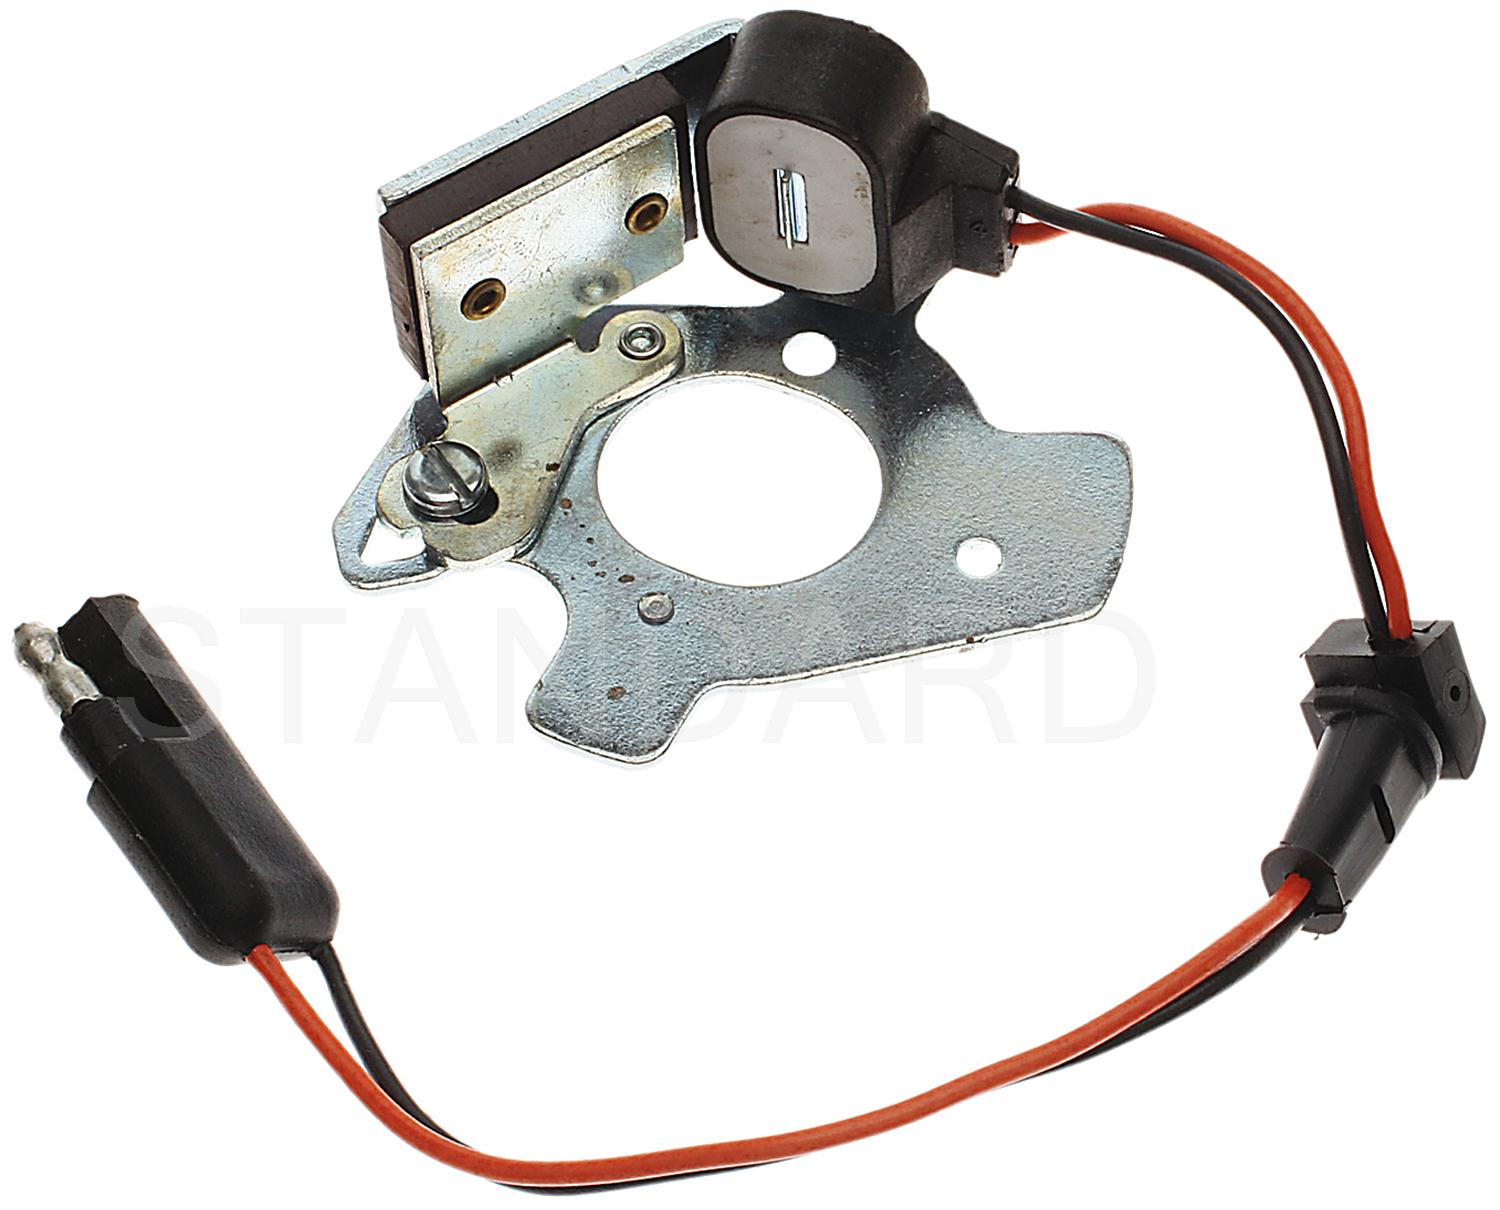 Standard Motor Products Lx102 Ignition Pick Up